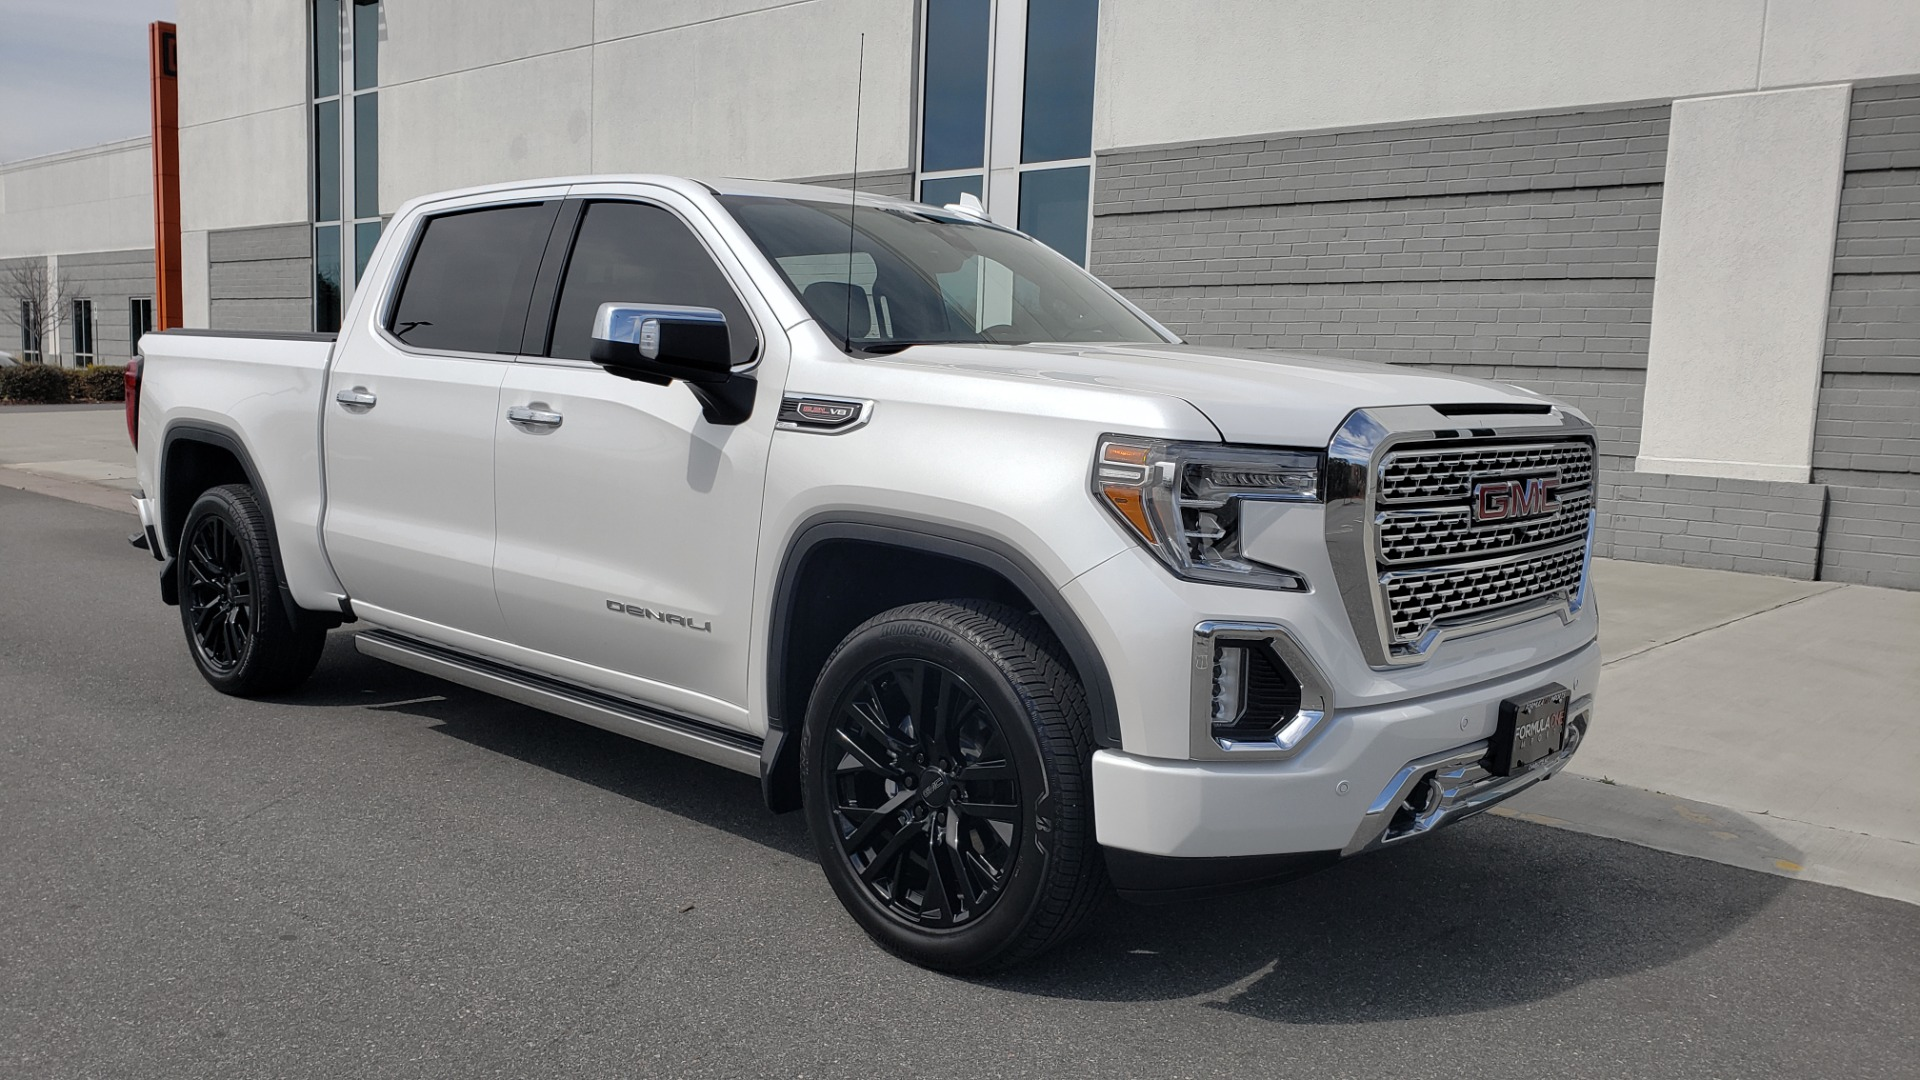 Used 2020 GMC SIERRA 1500 DENALI 4X4 CREWCAB 6.2L V8 / TECH / NAV / SUNROOF / DRVR ALERT II for sale Sold at Formula Imports in Charlotte NC 28227 6